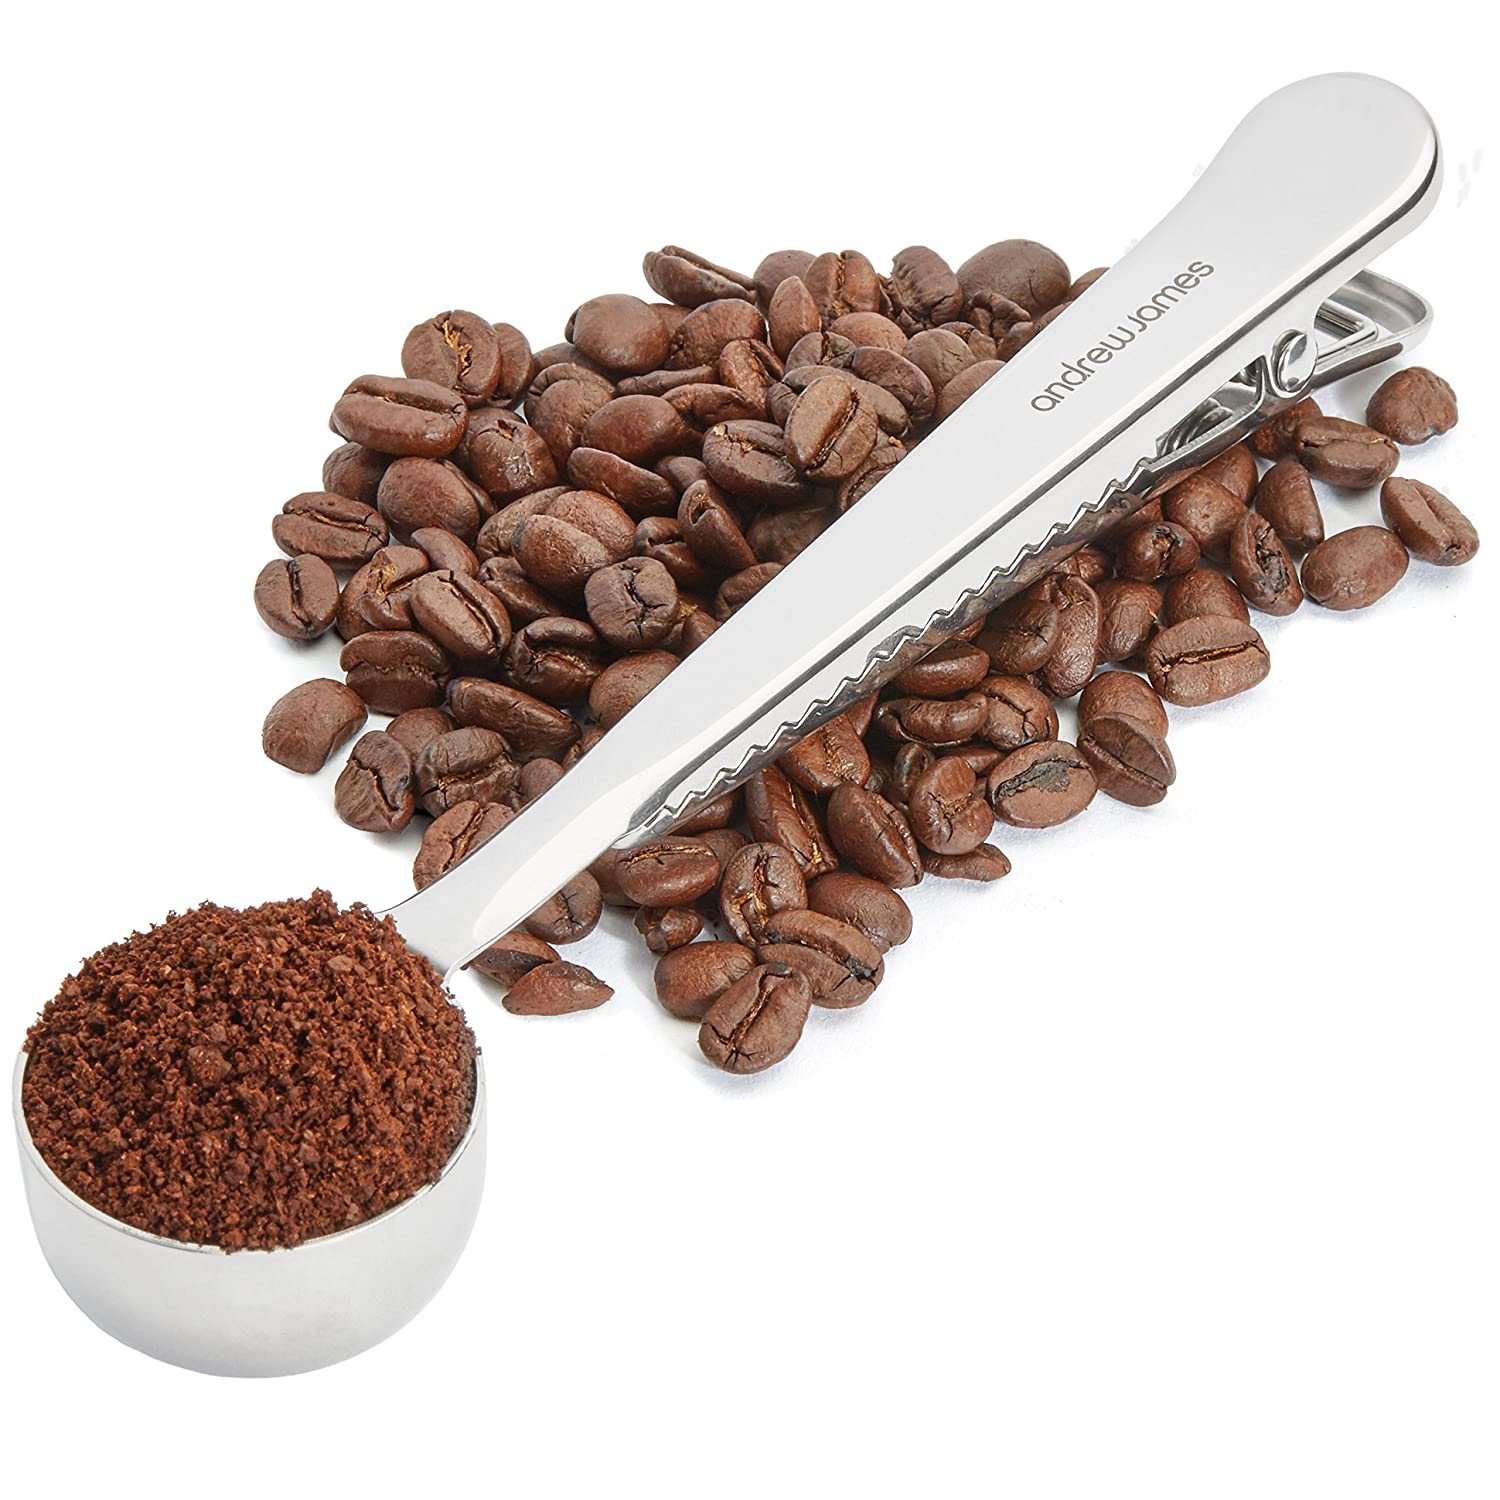 Andrew James Coffee Measuring Spoon with Bag Sealing Clip | Stainless Steel | 7g Scoop